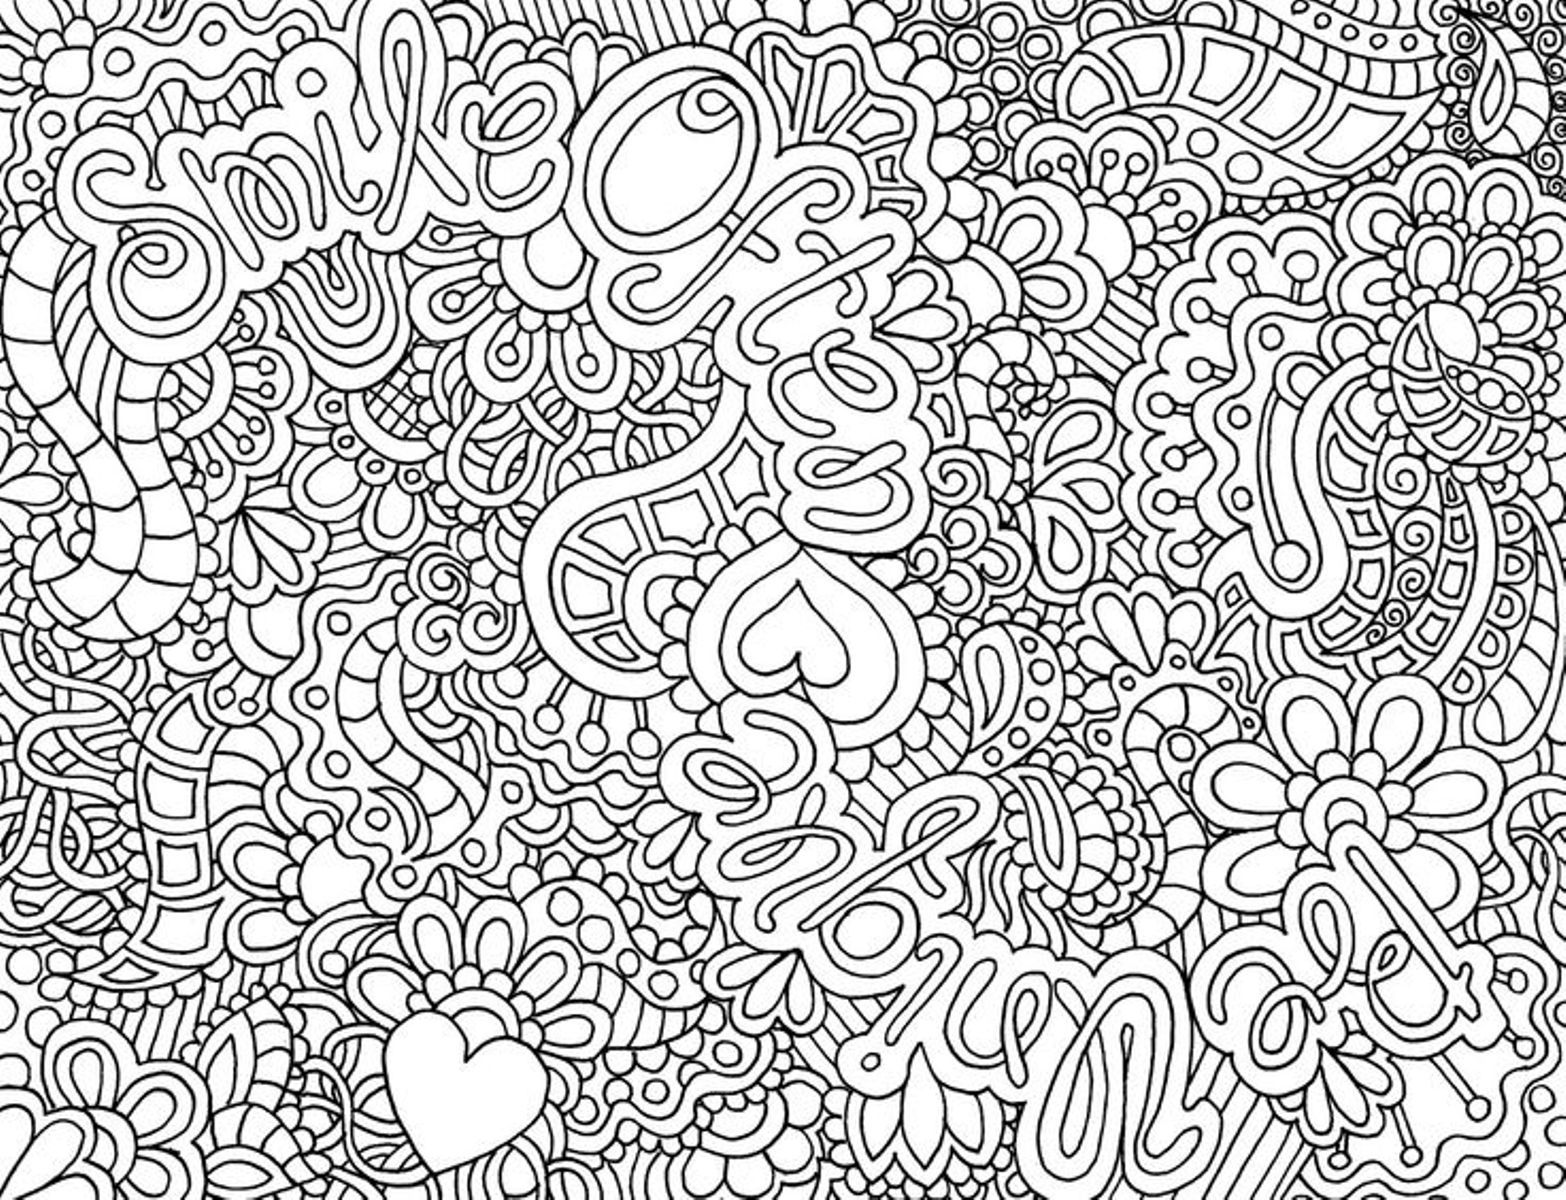 Free printable coloring pages with words - Difficult Hard Coloring Pages Printable Free Online Printable Coloring Pages Sheets For Kids Get The Latest Free Difficult Hard Coloring Pages Printable